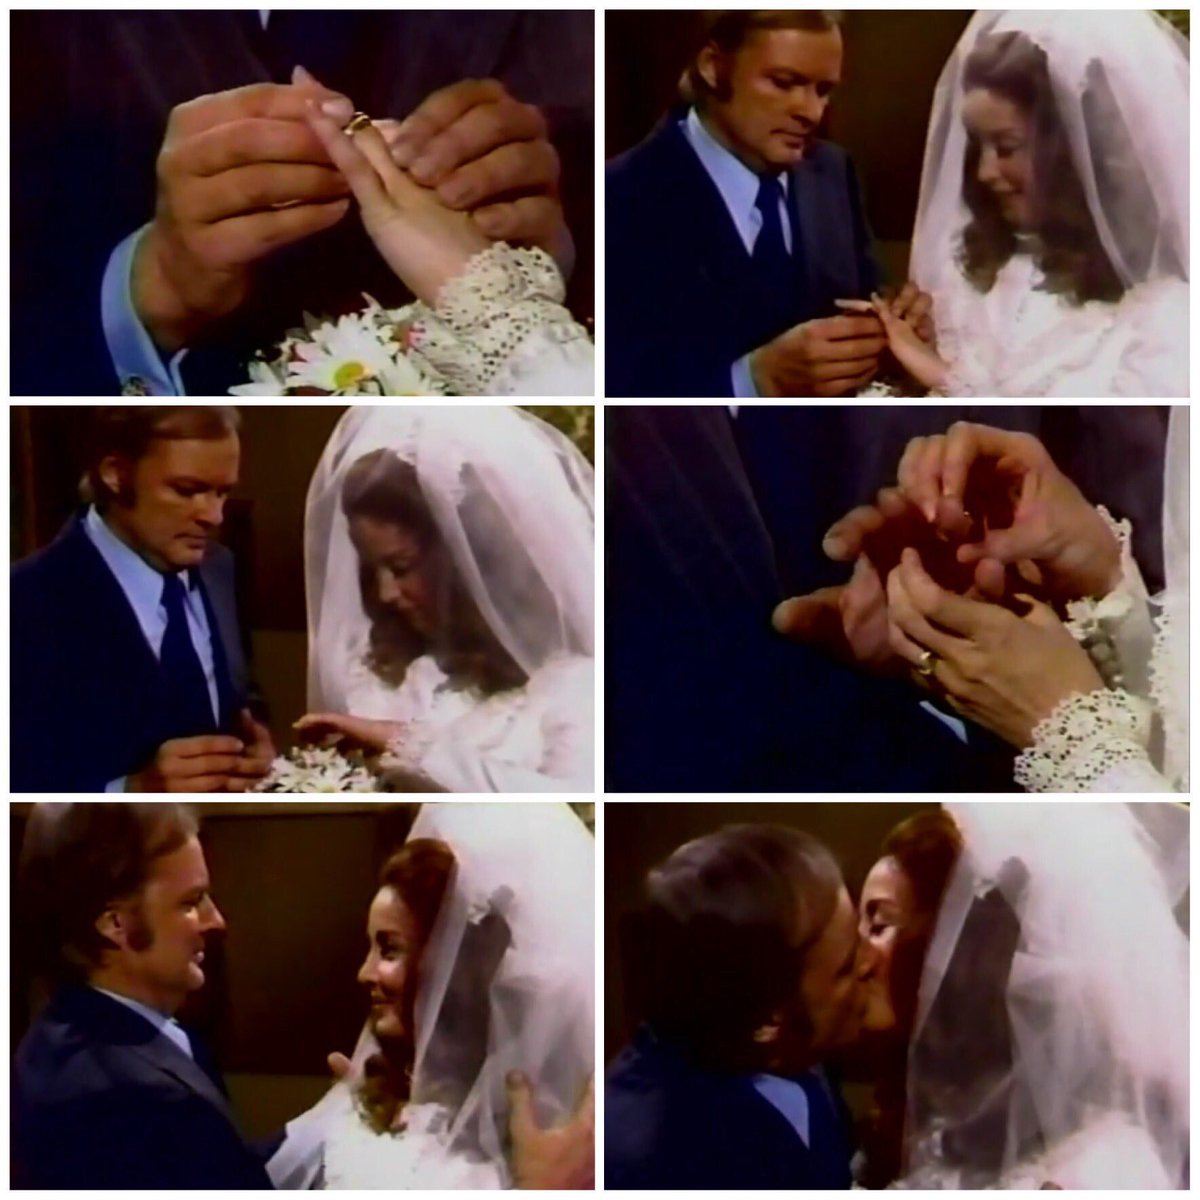 #OnThisDay in 1974, Mickey and Maggie got married; Mickey was known as Marty Hansen at the time as he had amnesia #ClassicDays #Days